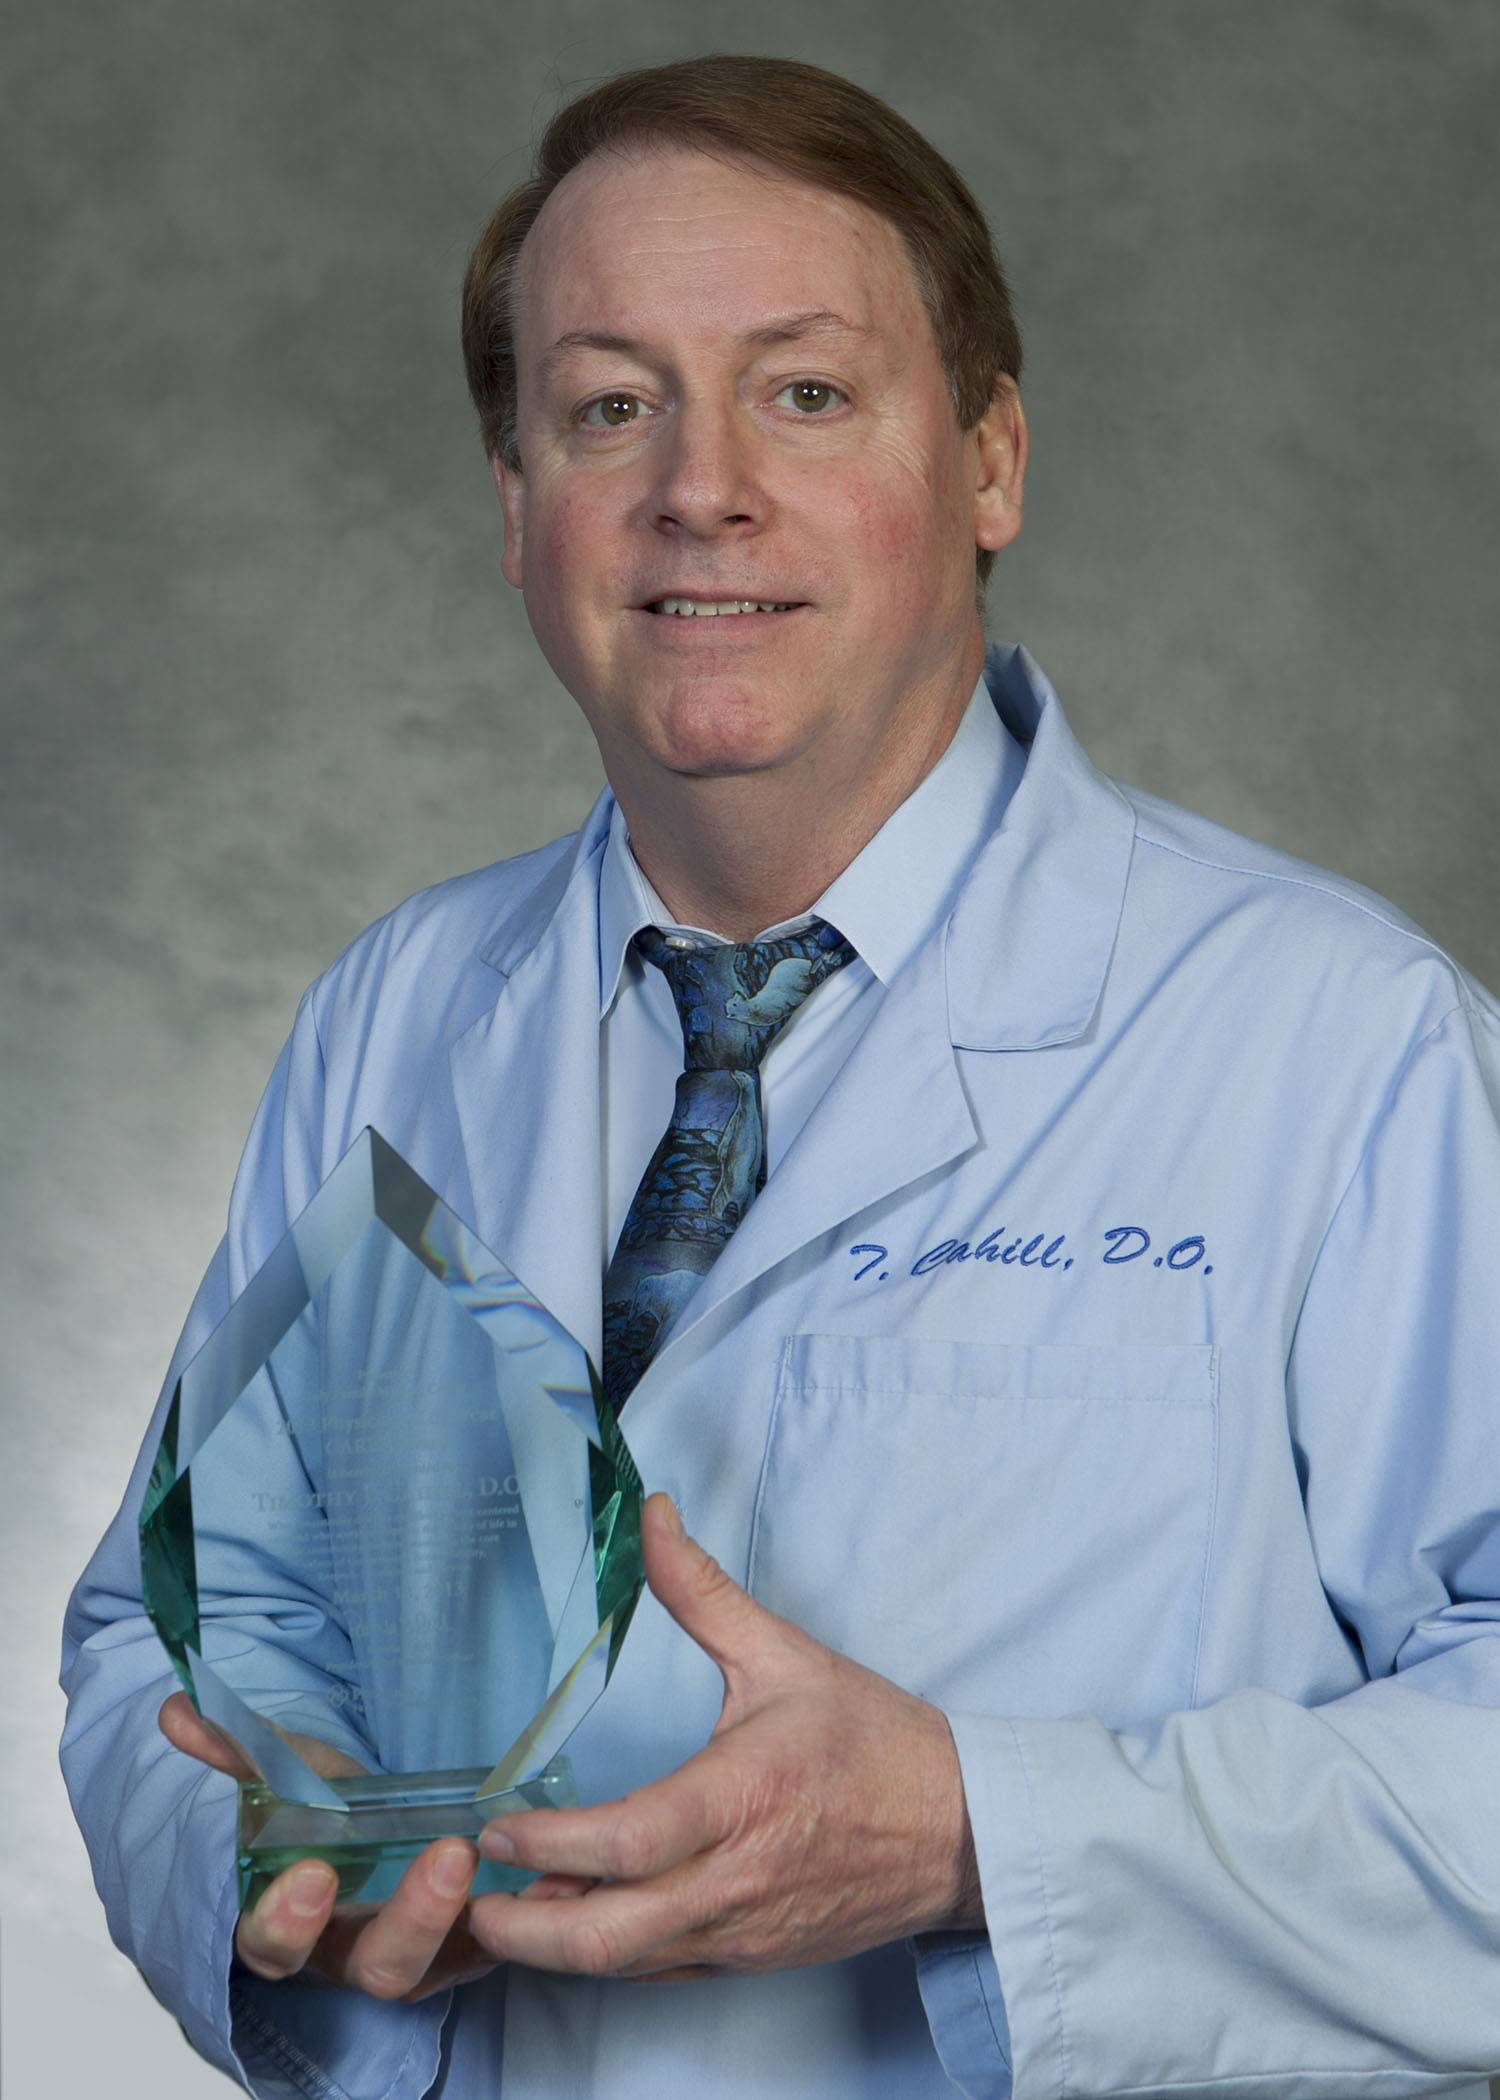 Park Ridge resident Dr. Timothy Cahill, was presented with the annual Physician of the Year CARES Award from Holy Family Medical Center, where he currently serves as Medical Director.